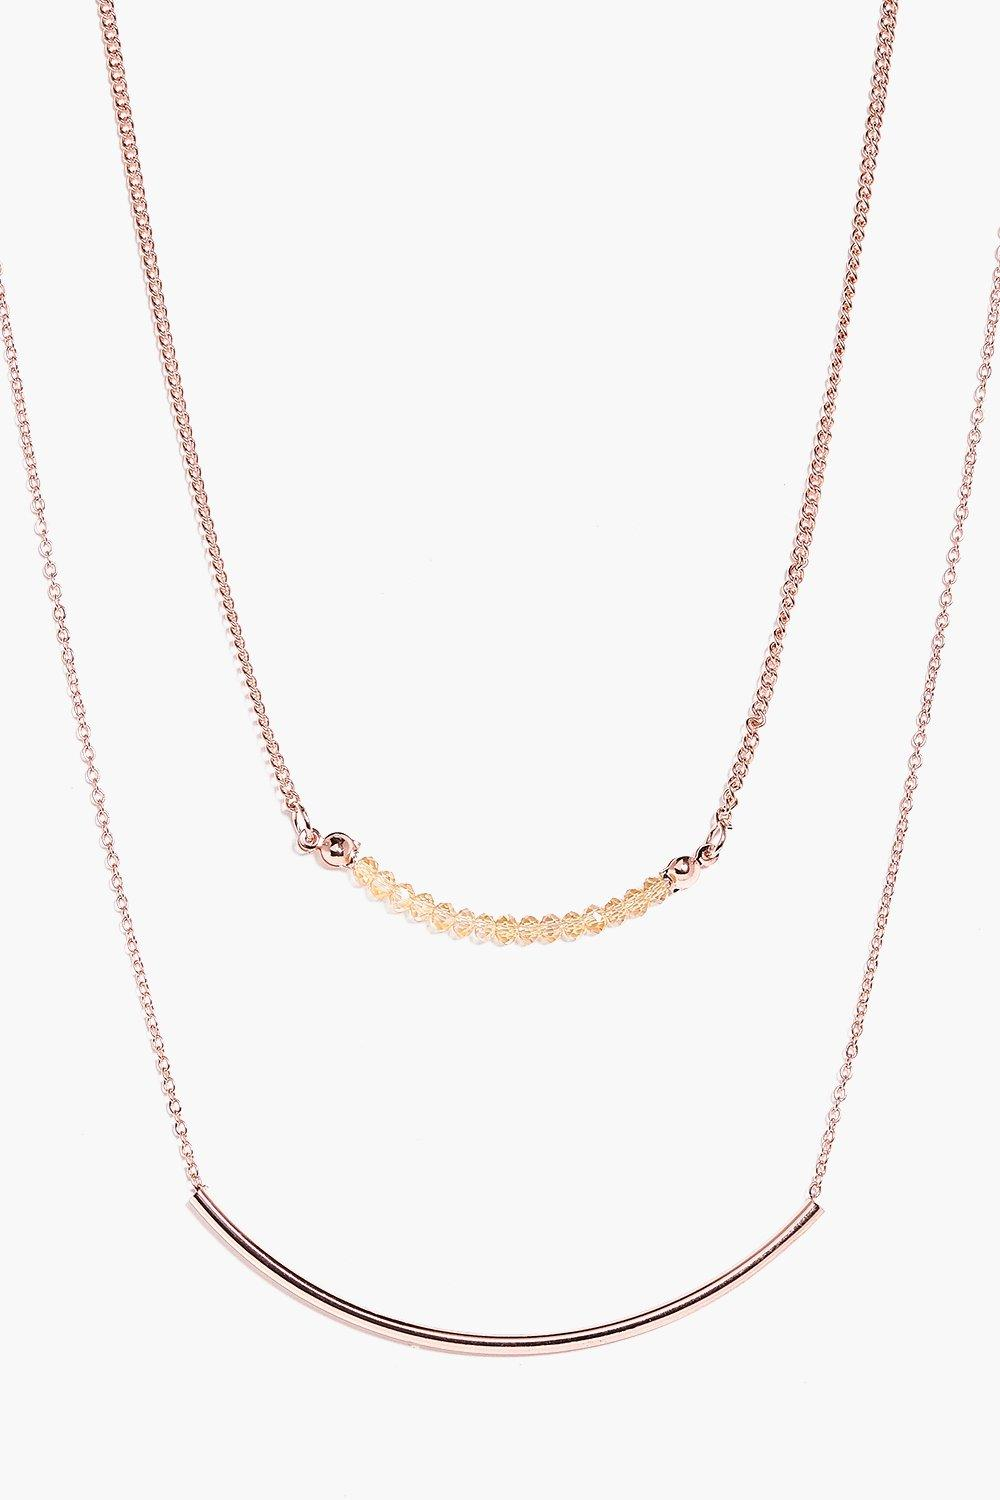 Annabelle Curved Bar Layered Necklace